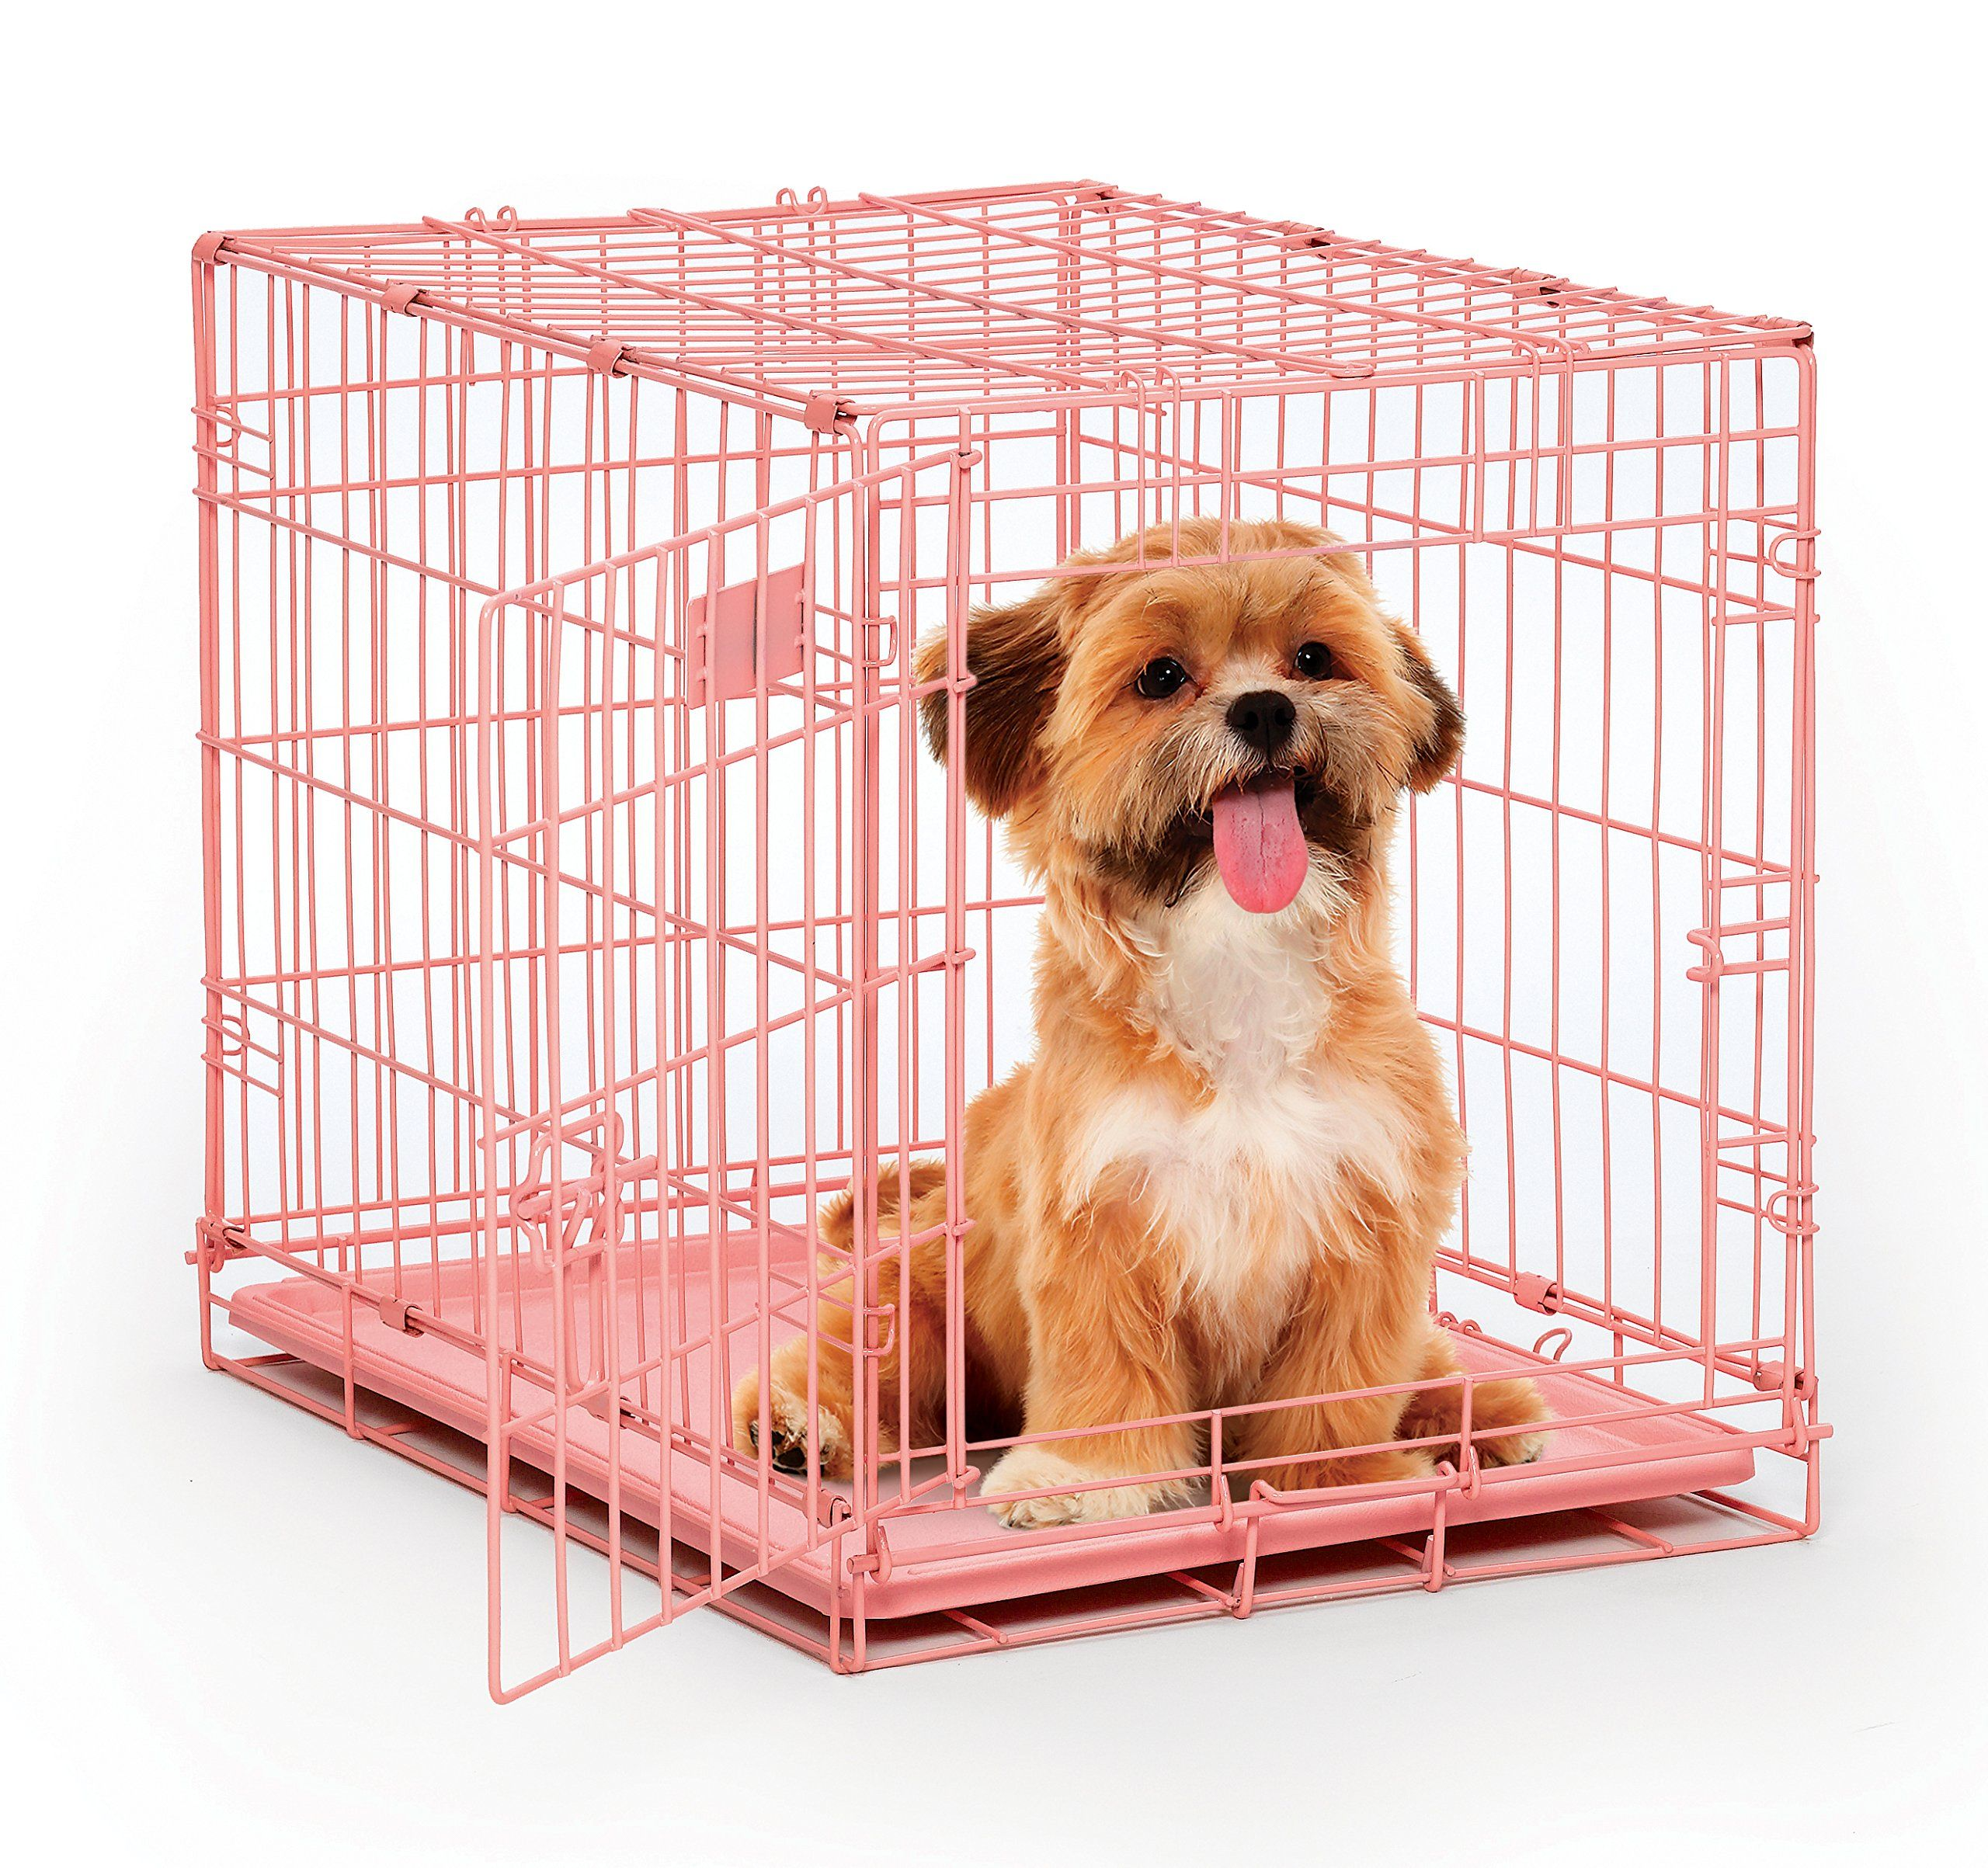 Pink Dog Crate Midwest Icrate 24 Pink Folding Metal Dog Crate W Divider Panel Floor Protecting Feet And Leak Small Dog Crate Pink Dog Crate Folding Dog Crate